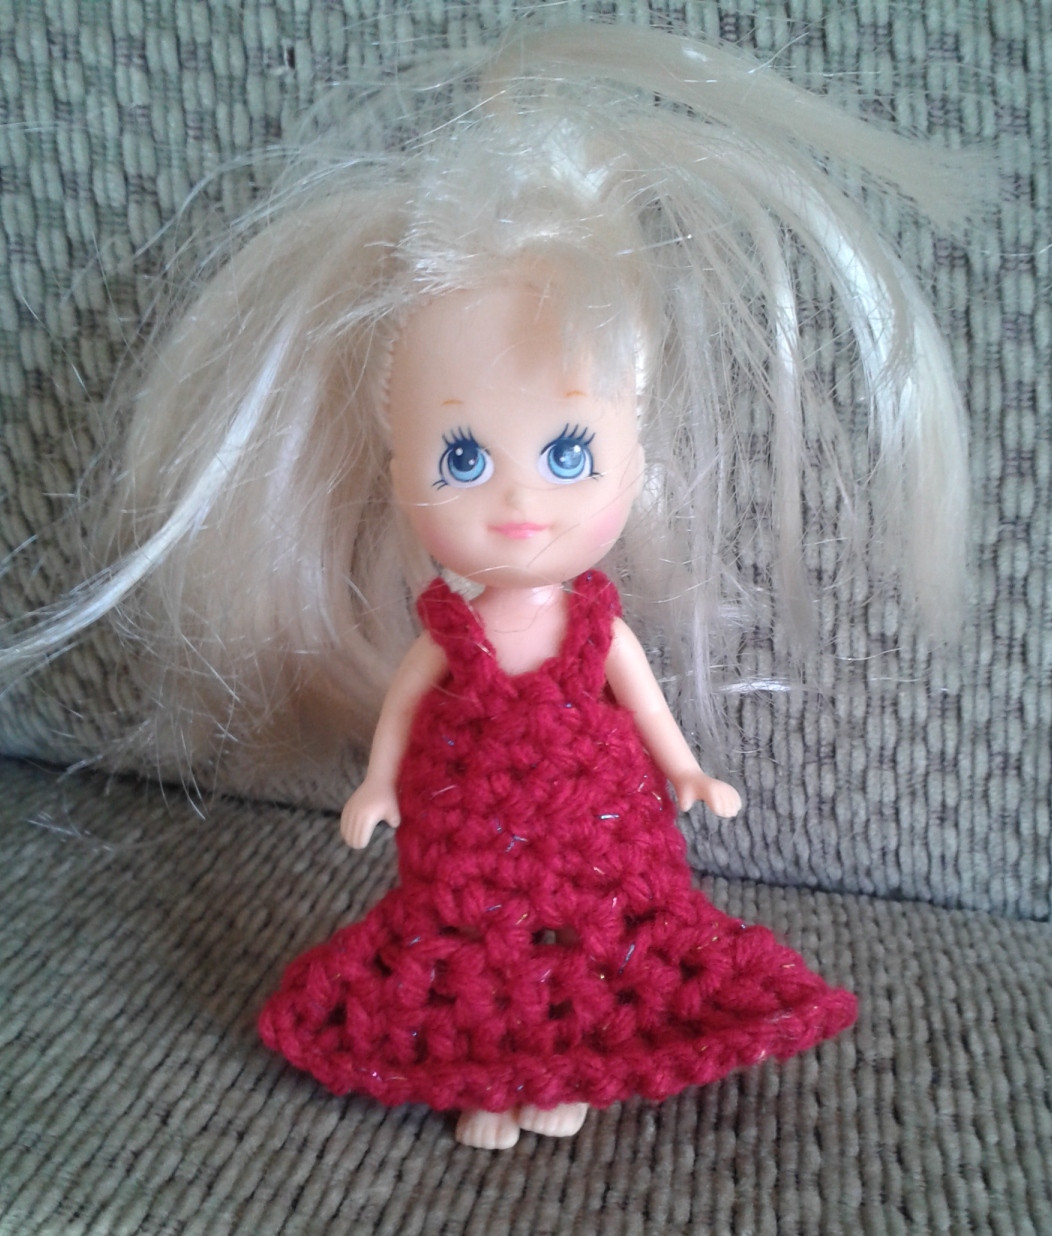 Crochet Doll Clothes New Small Doll Clothing Free Patterns Of Fresh 48 Images Crochet Doll Clothes